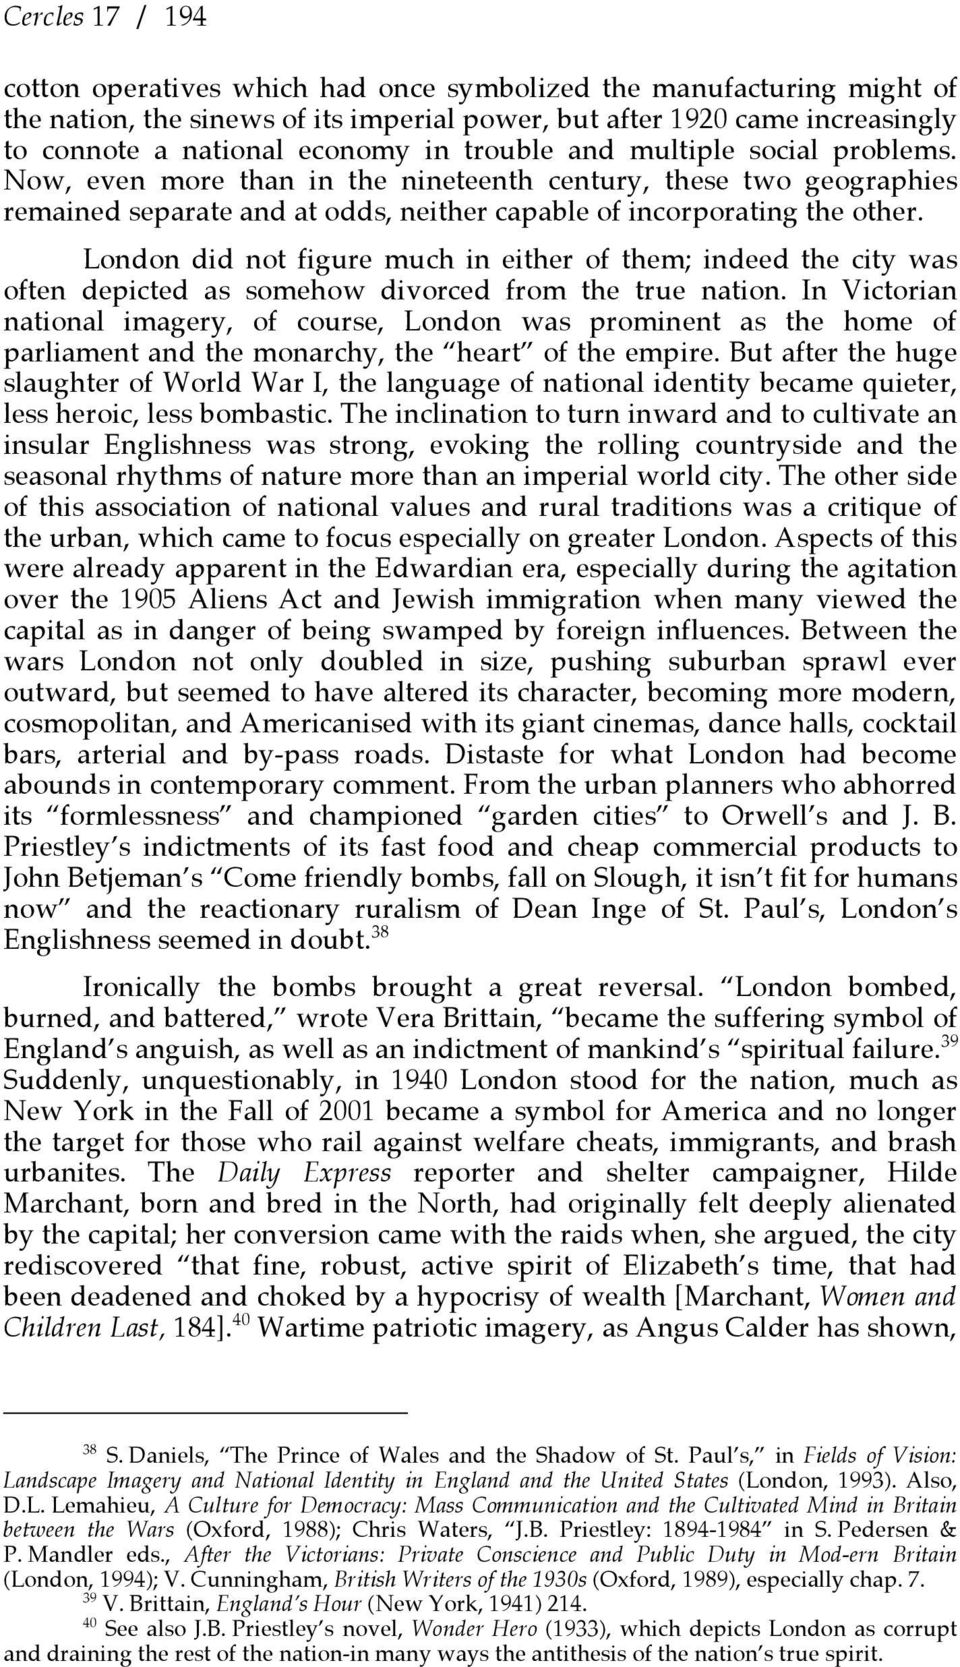 London did not figure much in either of them; indeed the city was often depicted as somehow divorced from the true nation.